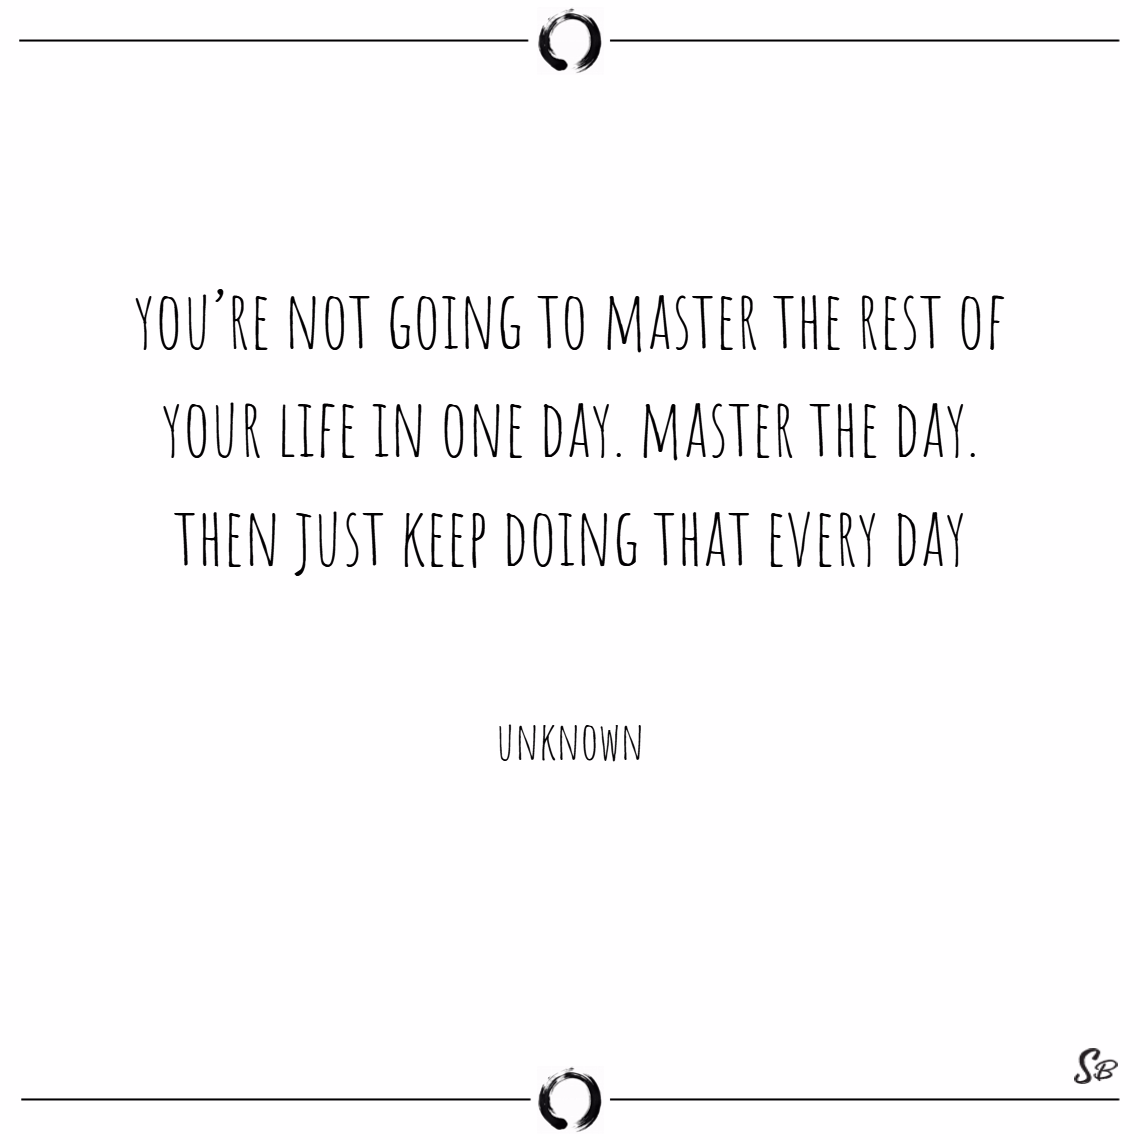 You're not going to master the rest of your life in one day. master the day. then just keep doing that every day. – unknown